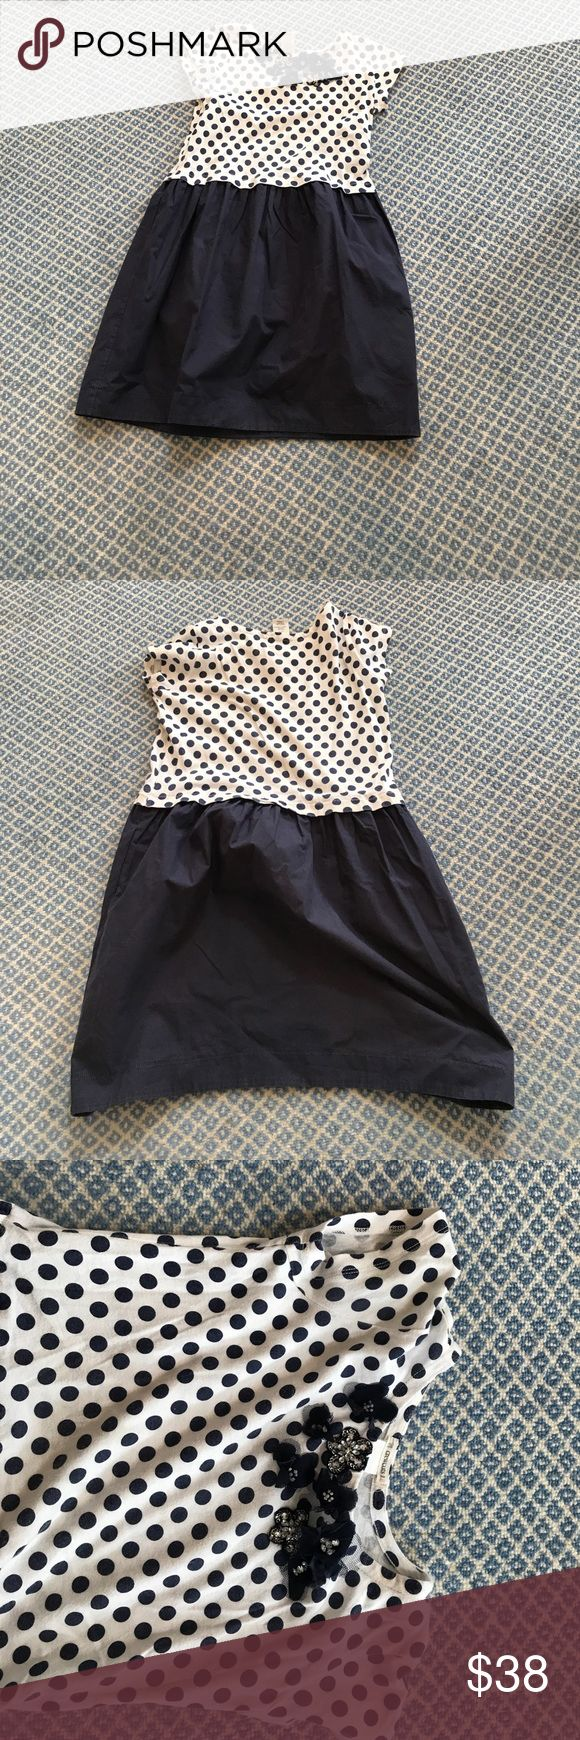 Crewcuts Kids Navy Blue and White Polka Dot dress. Size 8, Navy Blue And White Crewcuts Kids dress with shimmering flowers. In amazing condition. Crewcuts Dresses Casual